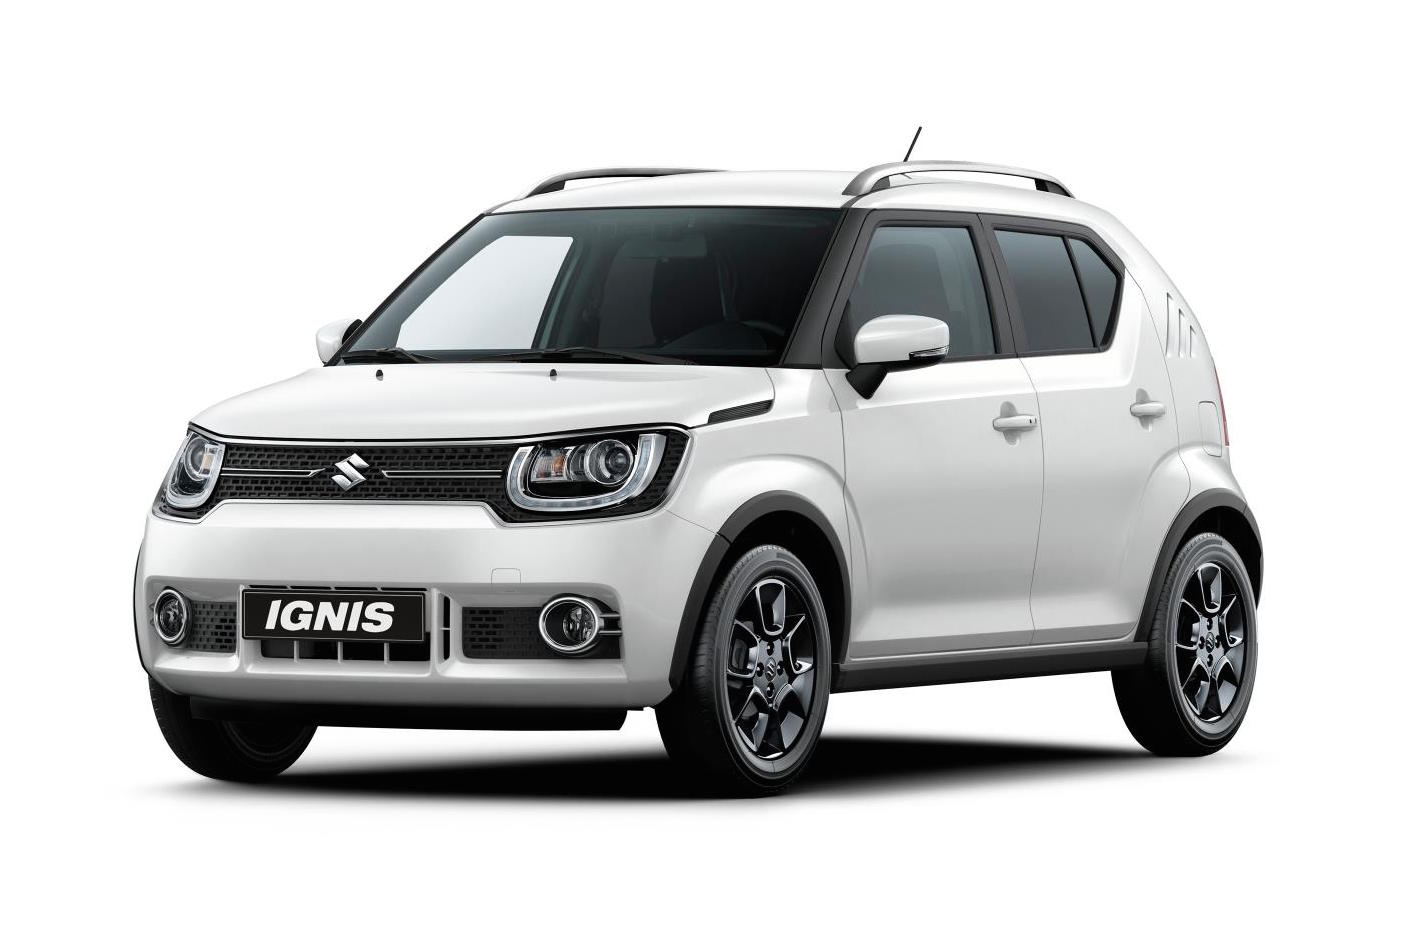 new suzuki ignis crossover revealed full debut at paris show performancedrive. Black Bedroom Furniture Sets. Home Design Ideas